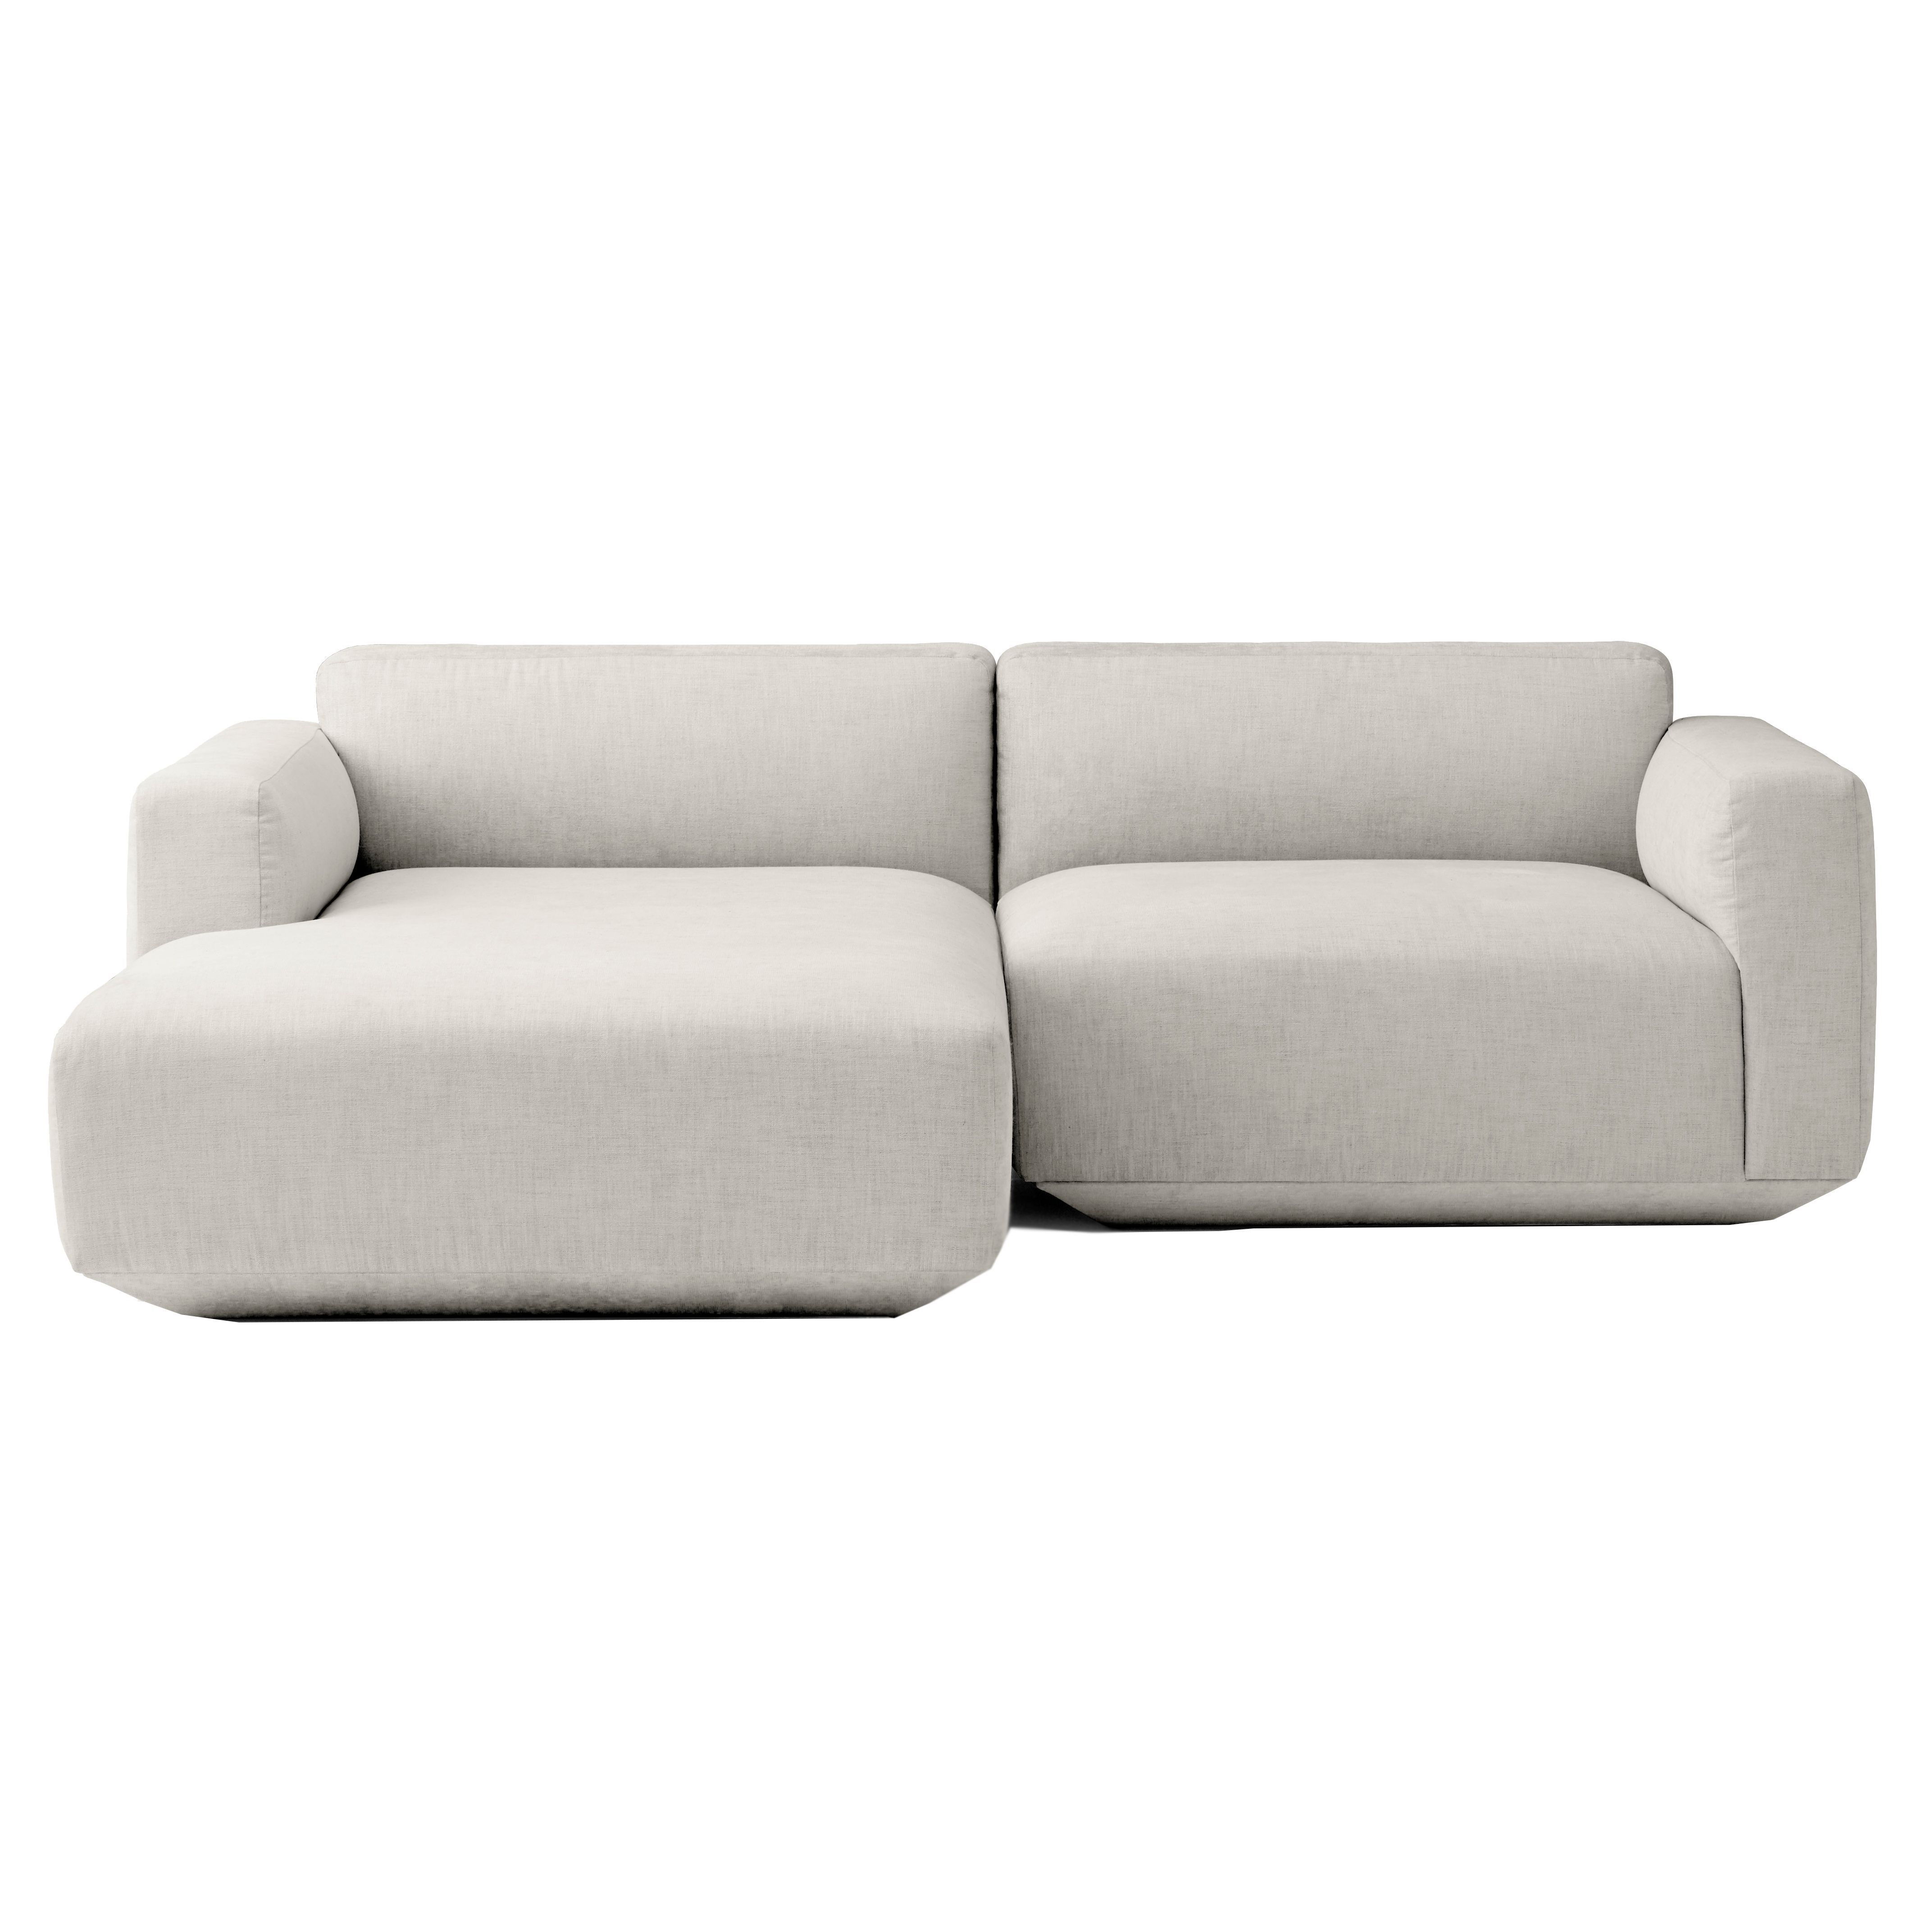 Bank Met 2 Chaise Longue.Tradition Develius Bank 2 Zits Met Chaise Longue Links